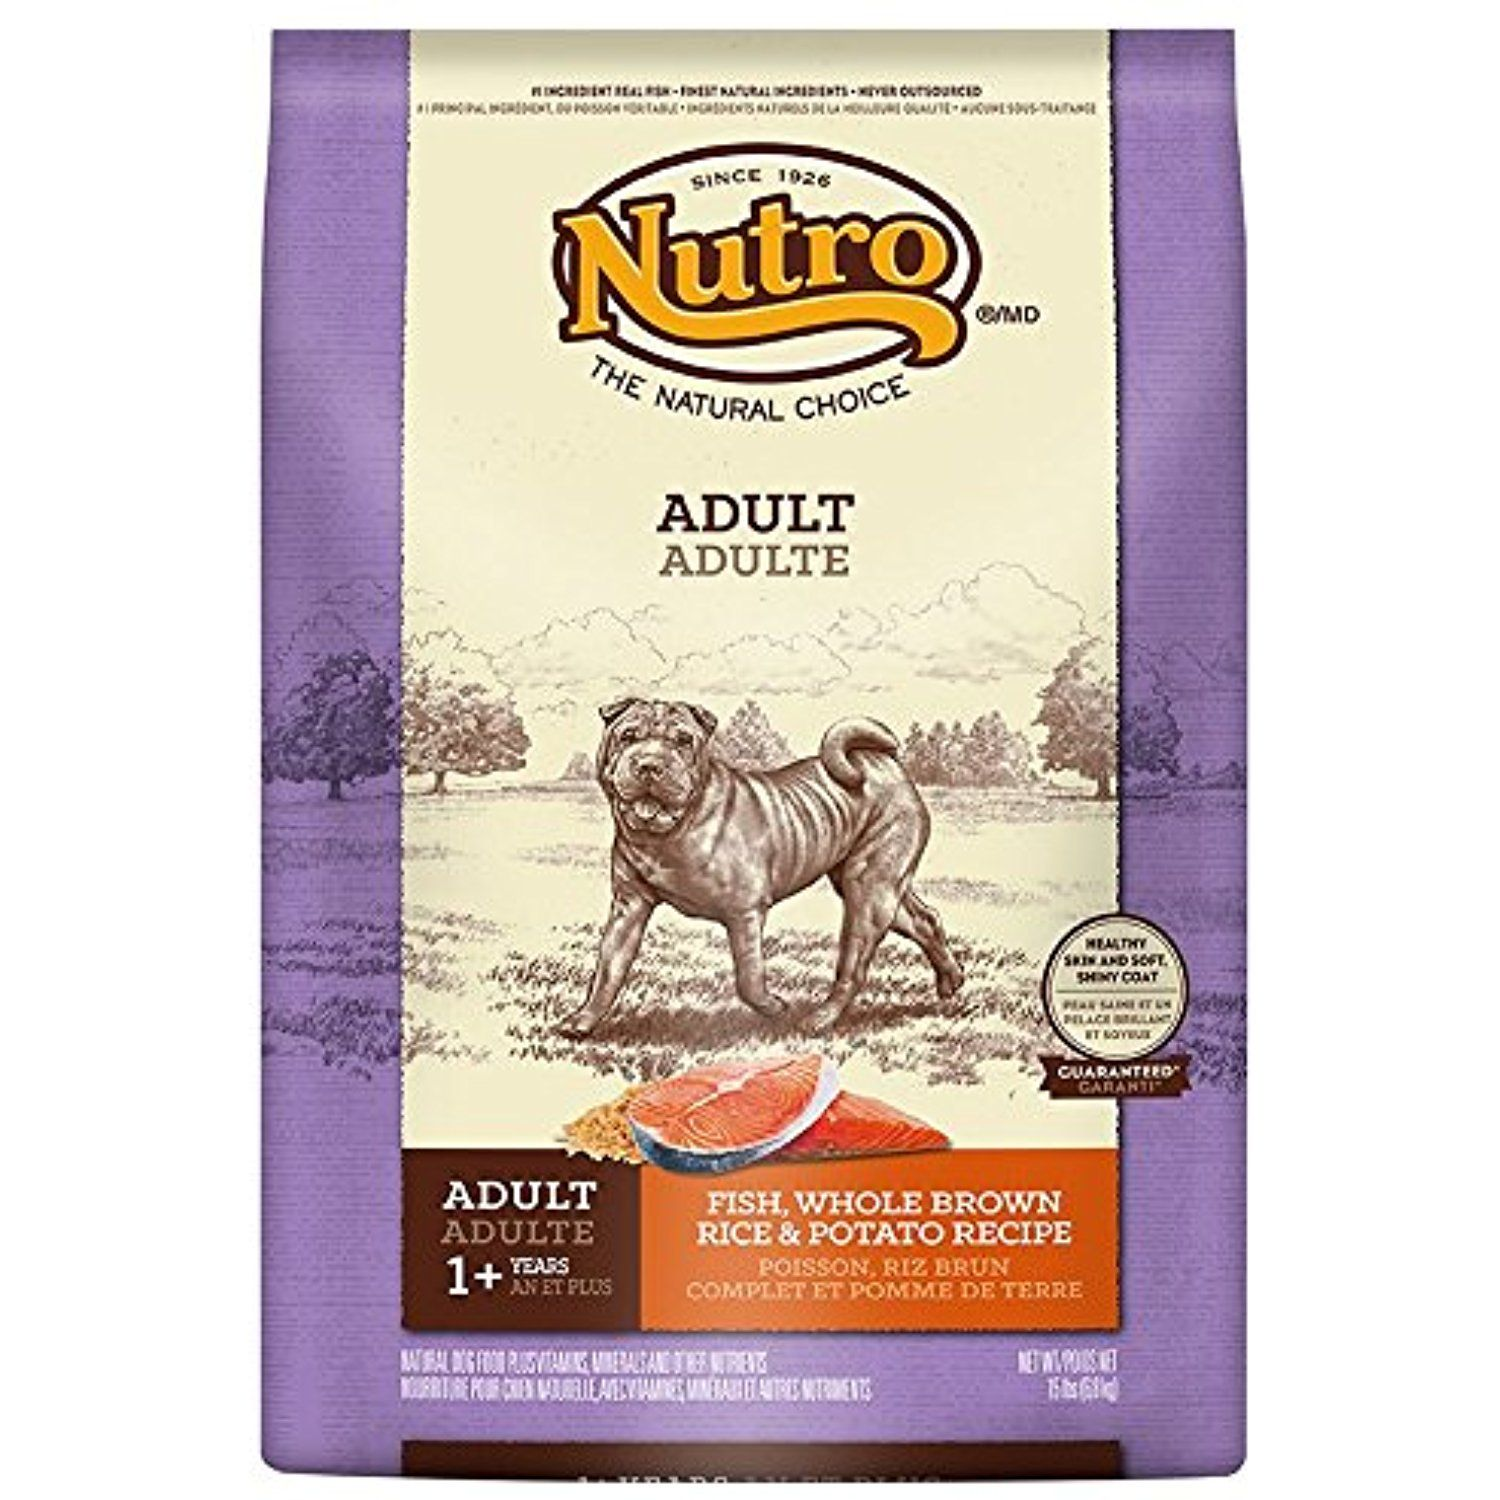 Nutro sensitive stomach dry dog food fish brown rice and